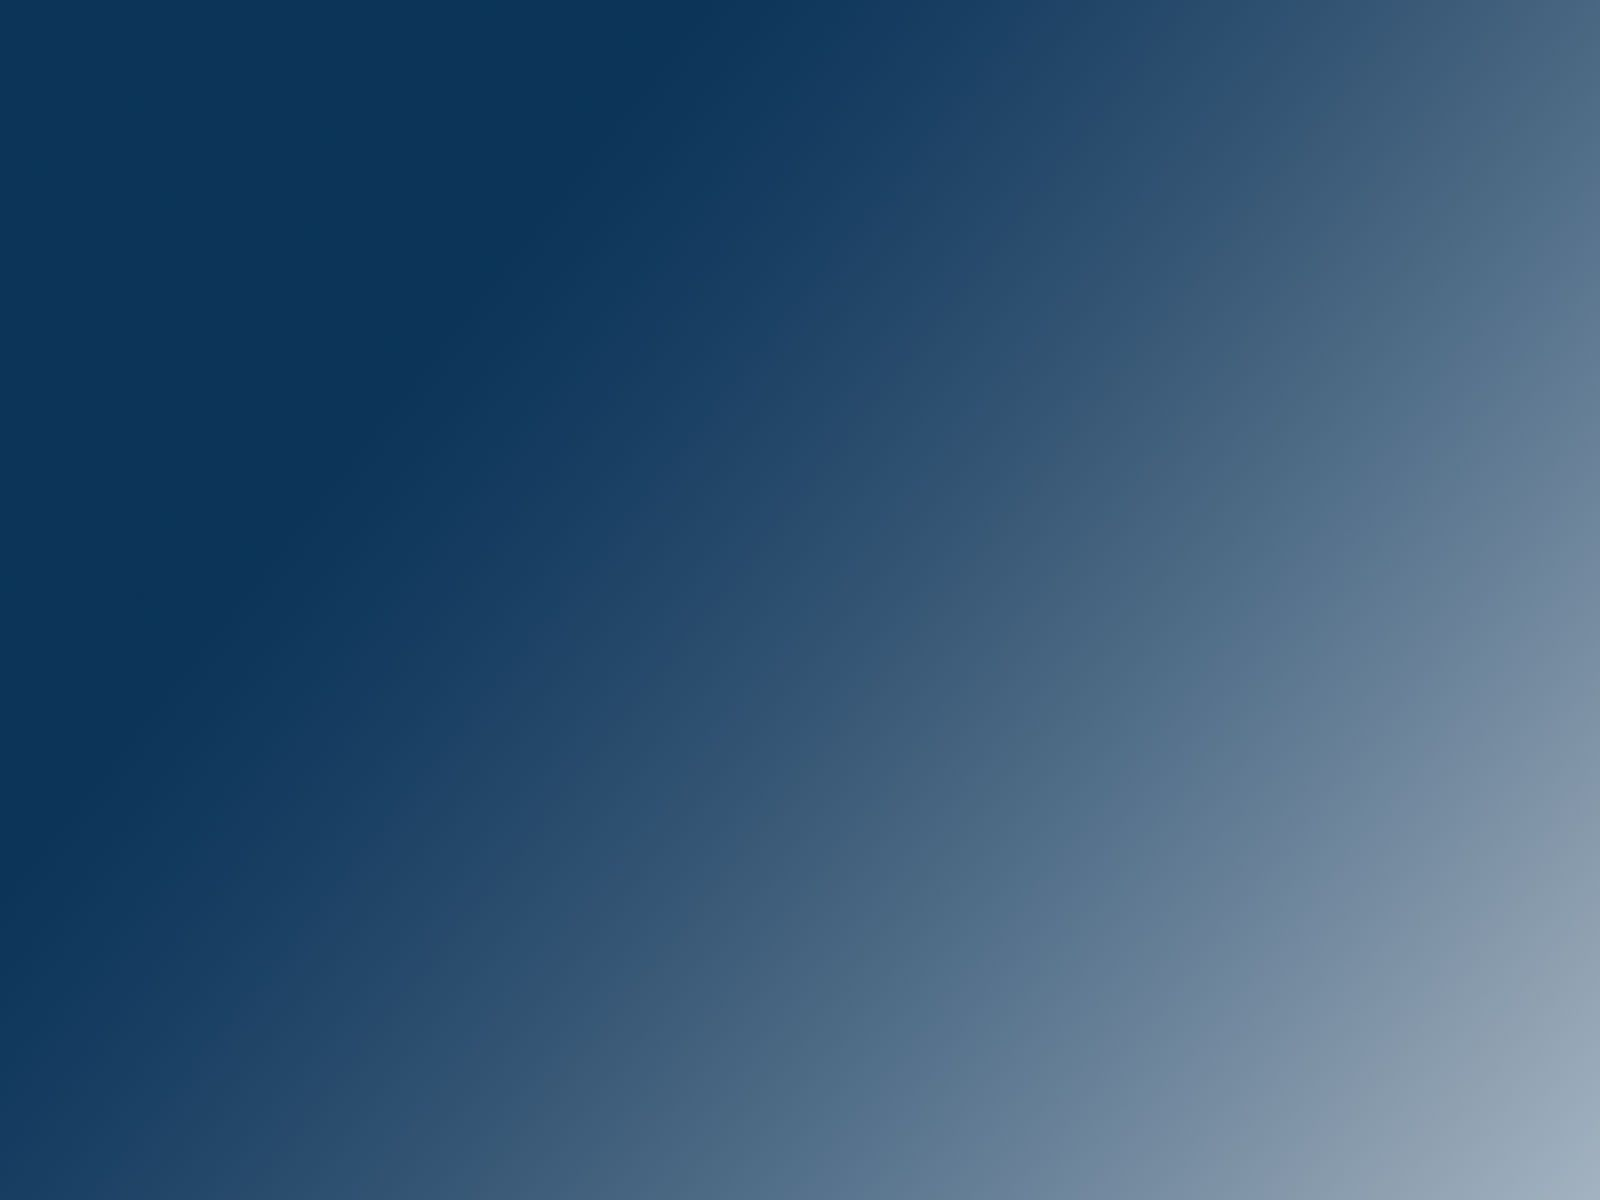 Solid Navy Blue Background | backgrounds, clipart, images ...